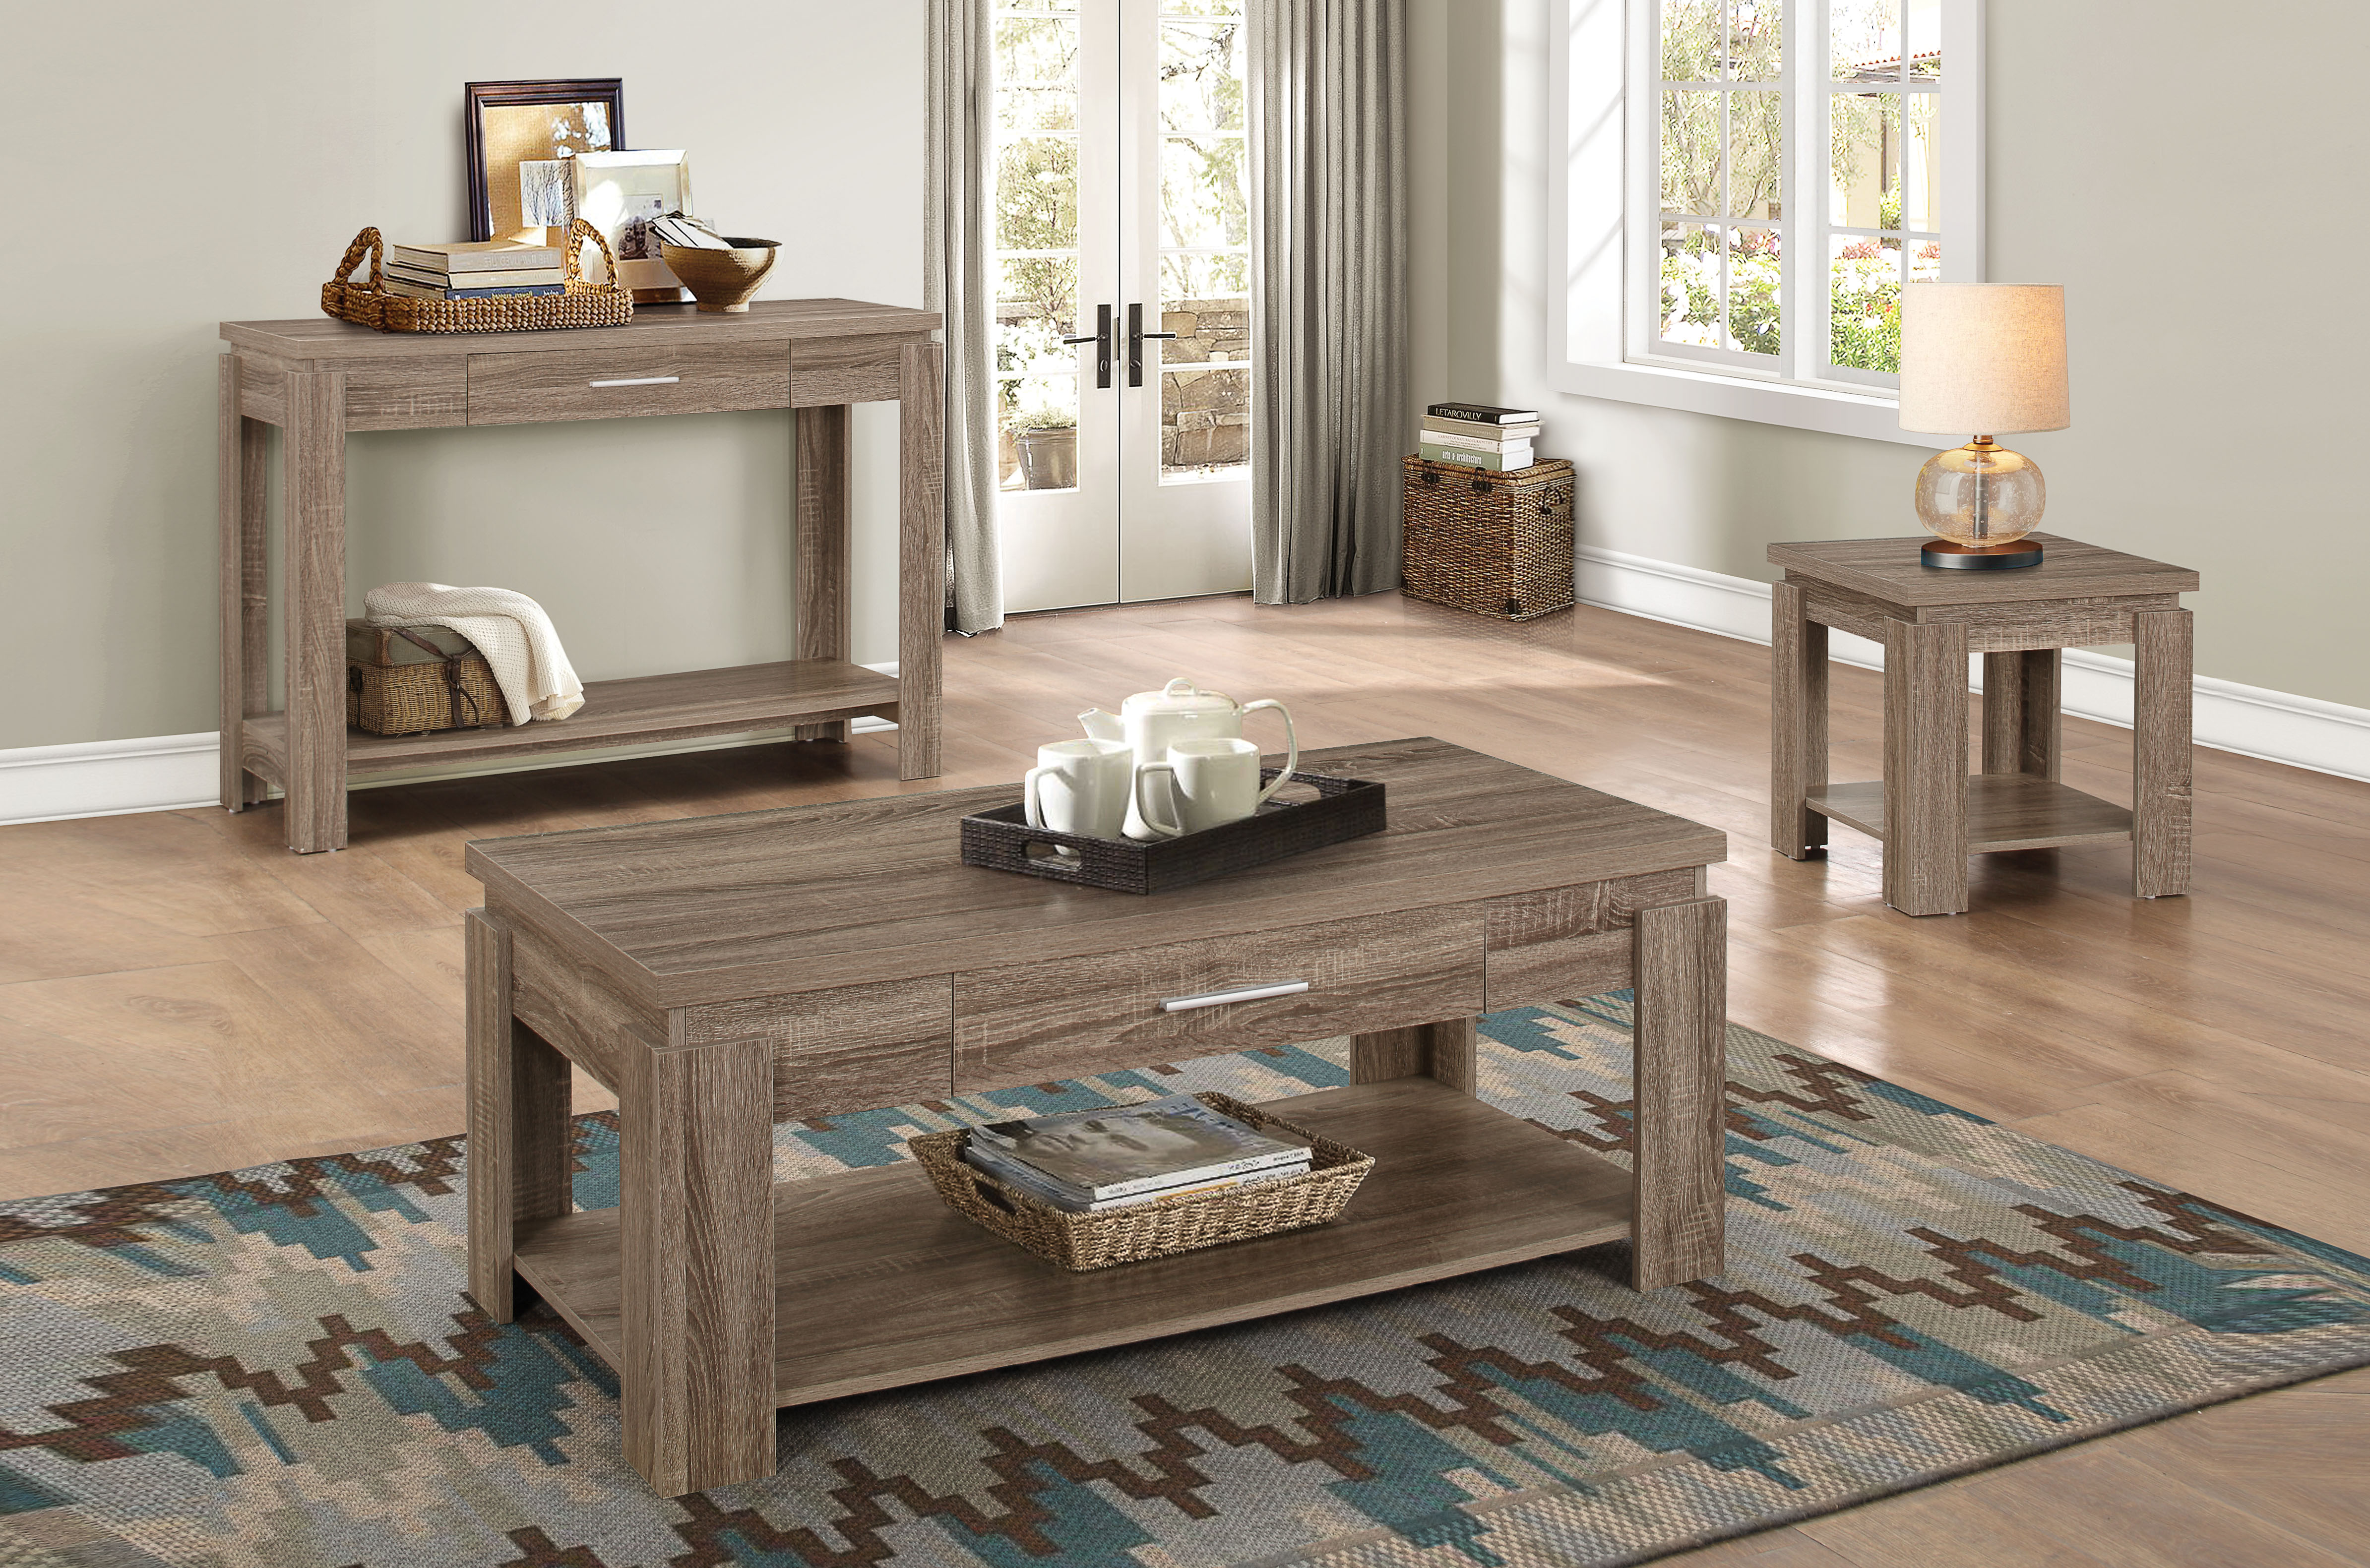 Coffee Table Set With Driftwood Style Veneer And Thin Chrome Handles For Drawers